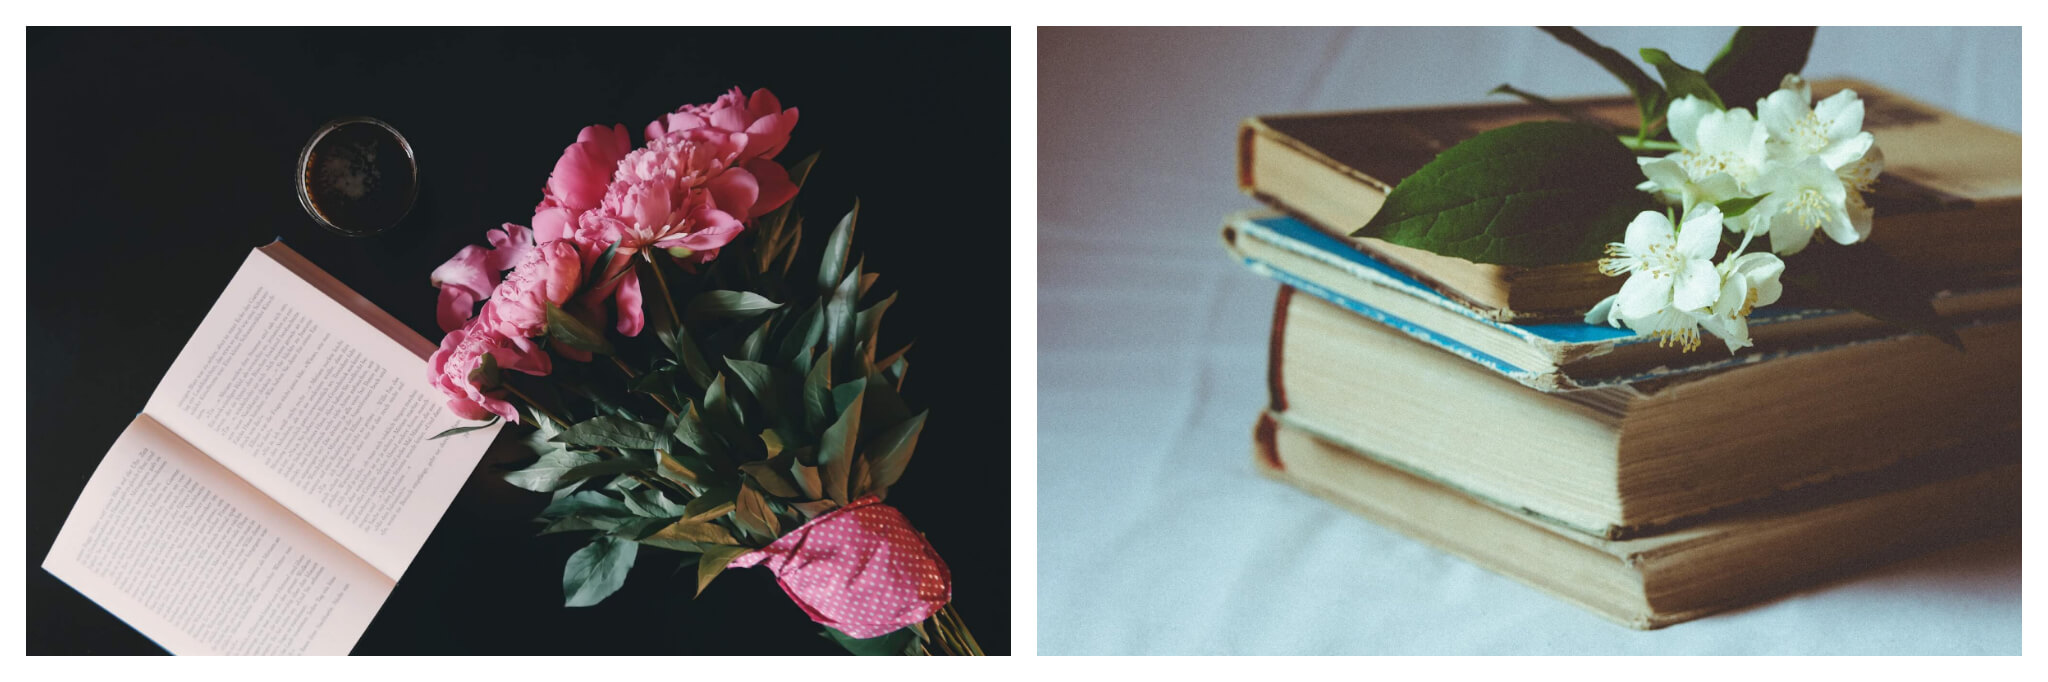 Left: An open book and bouquet of pink flowers lay next to each other atop a black surface, Right: Books are stacked on top of each other with a white flower resting on top.